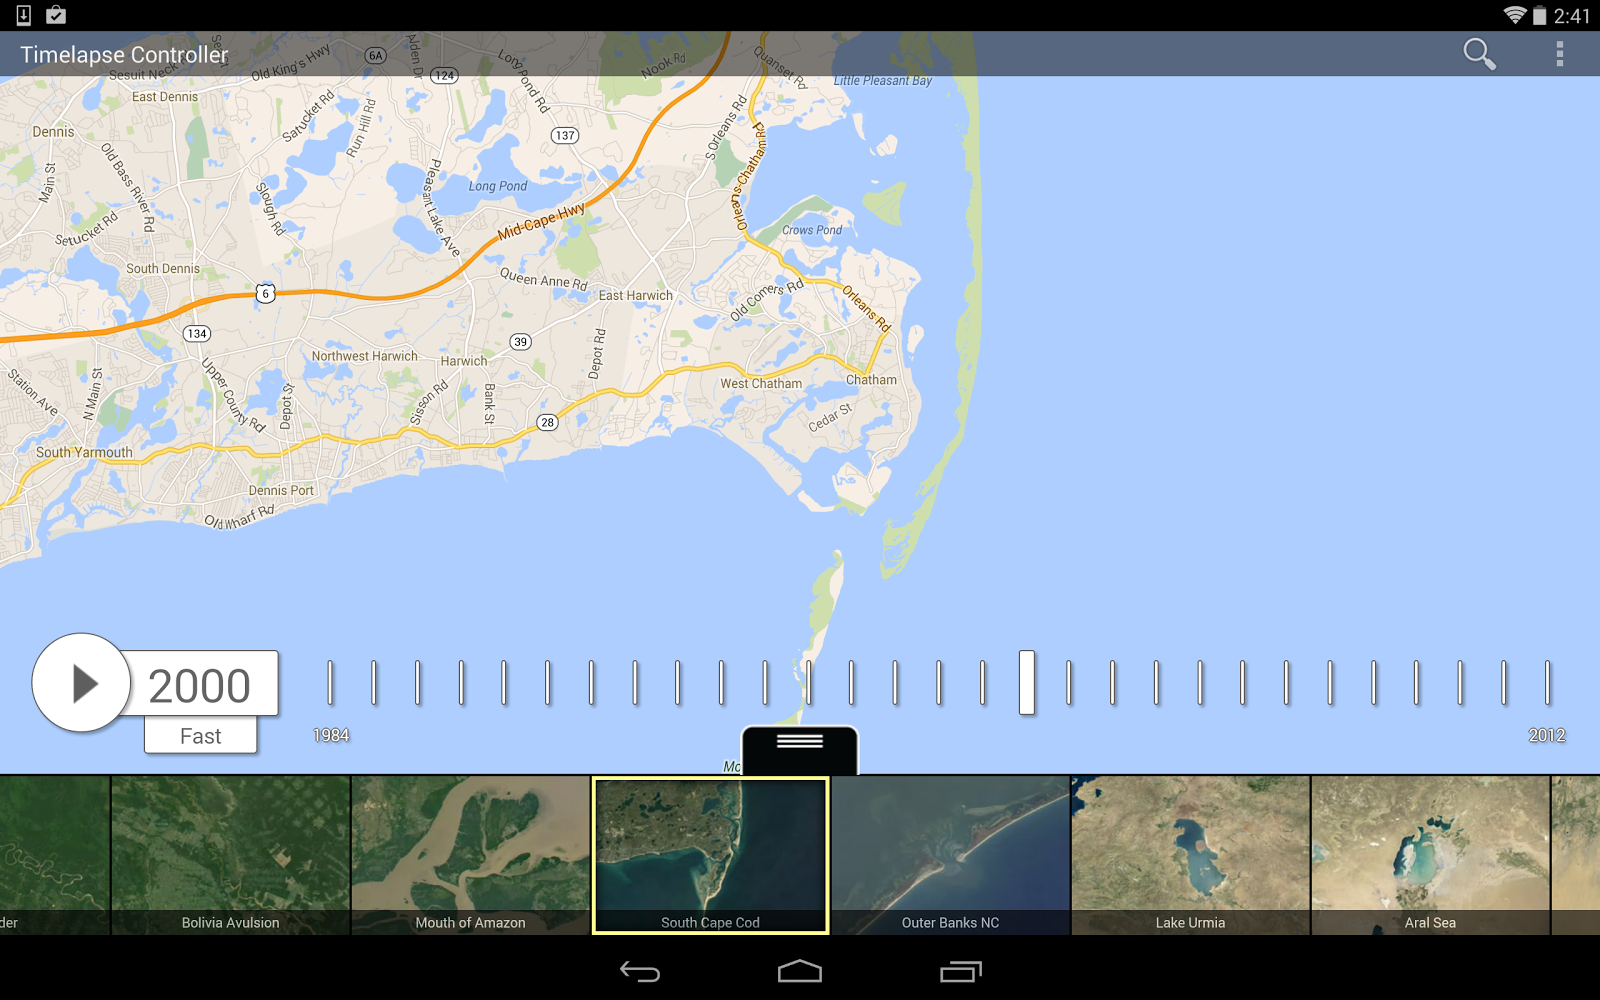 World Machine Google Maps. Android Controller  Google Earth Timelapse Hyperwall GigaPan